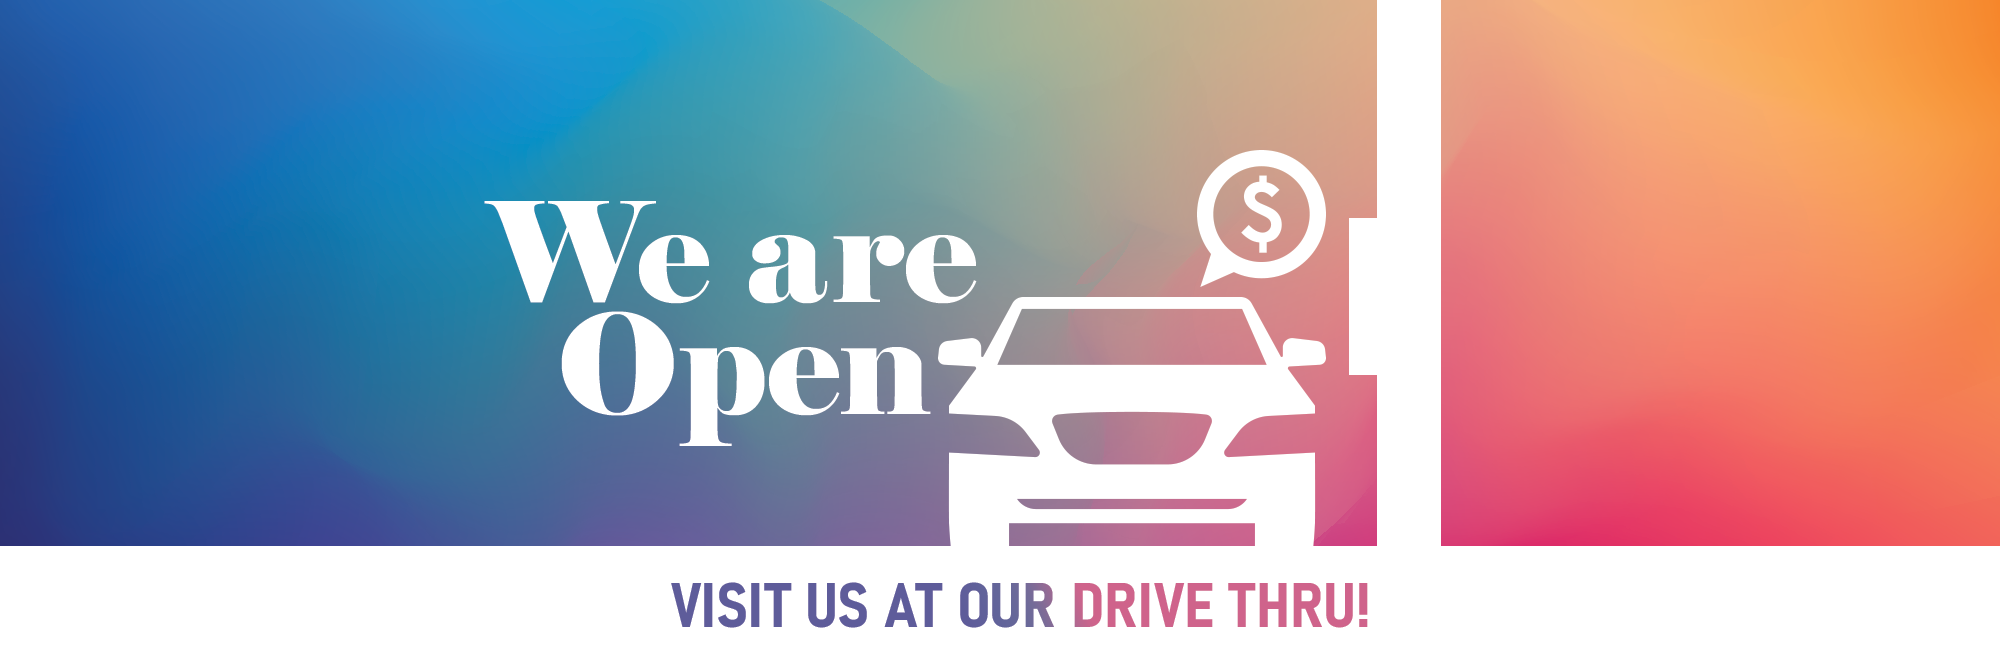 SACFCU is still open. Visit us in our drive thru.